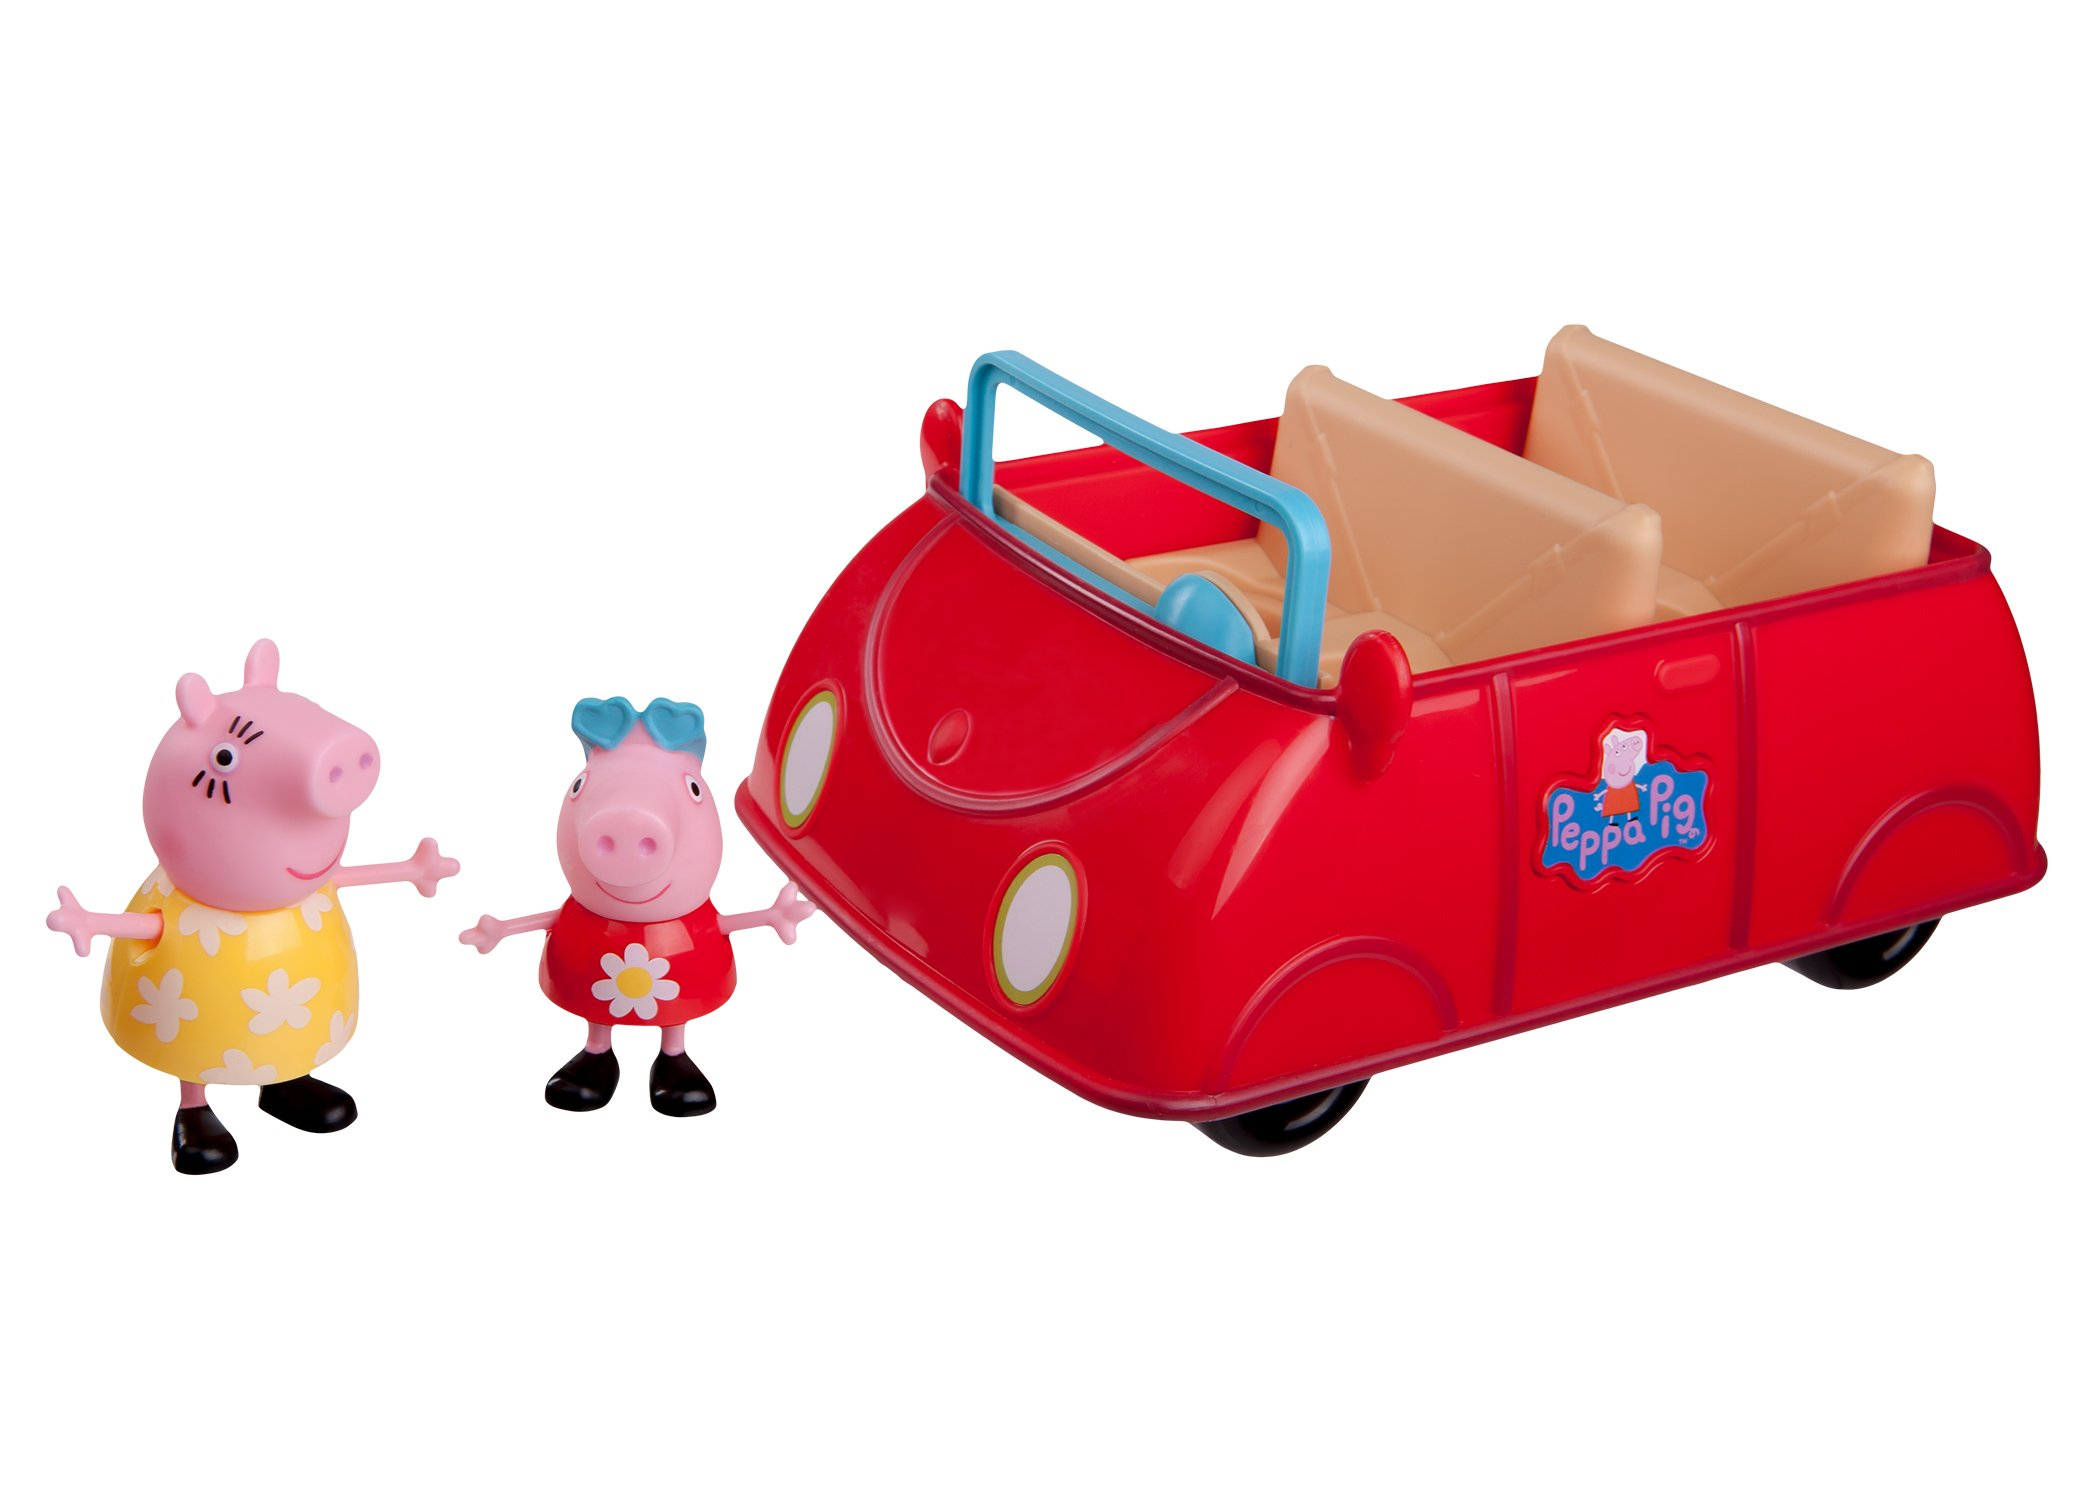 Peppa Pig Red Car by Peppa Pig